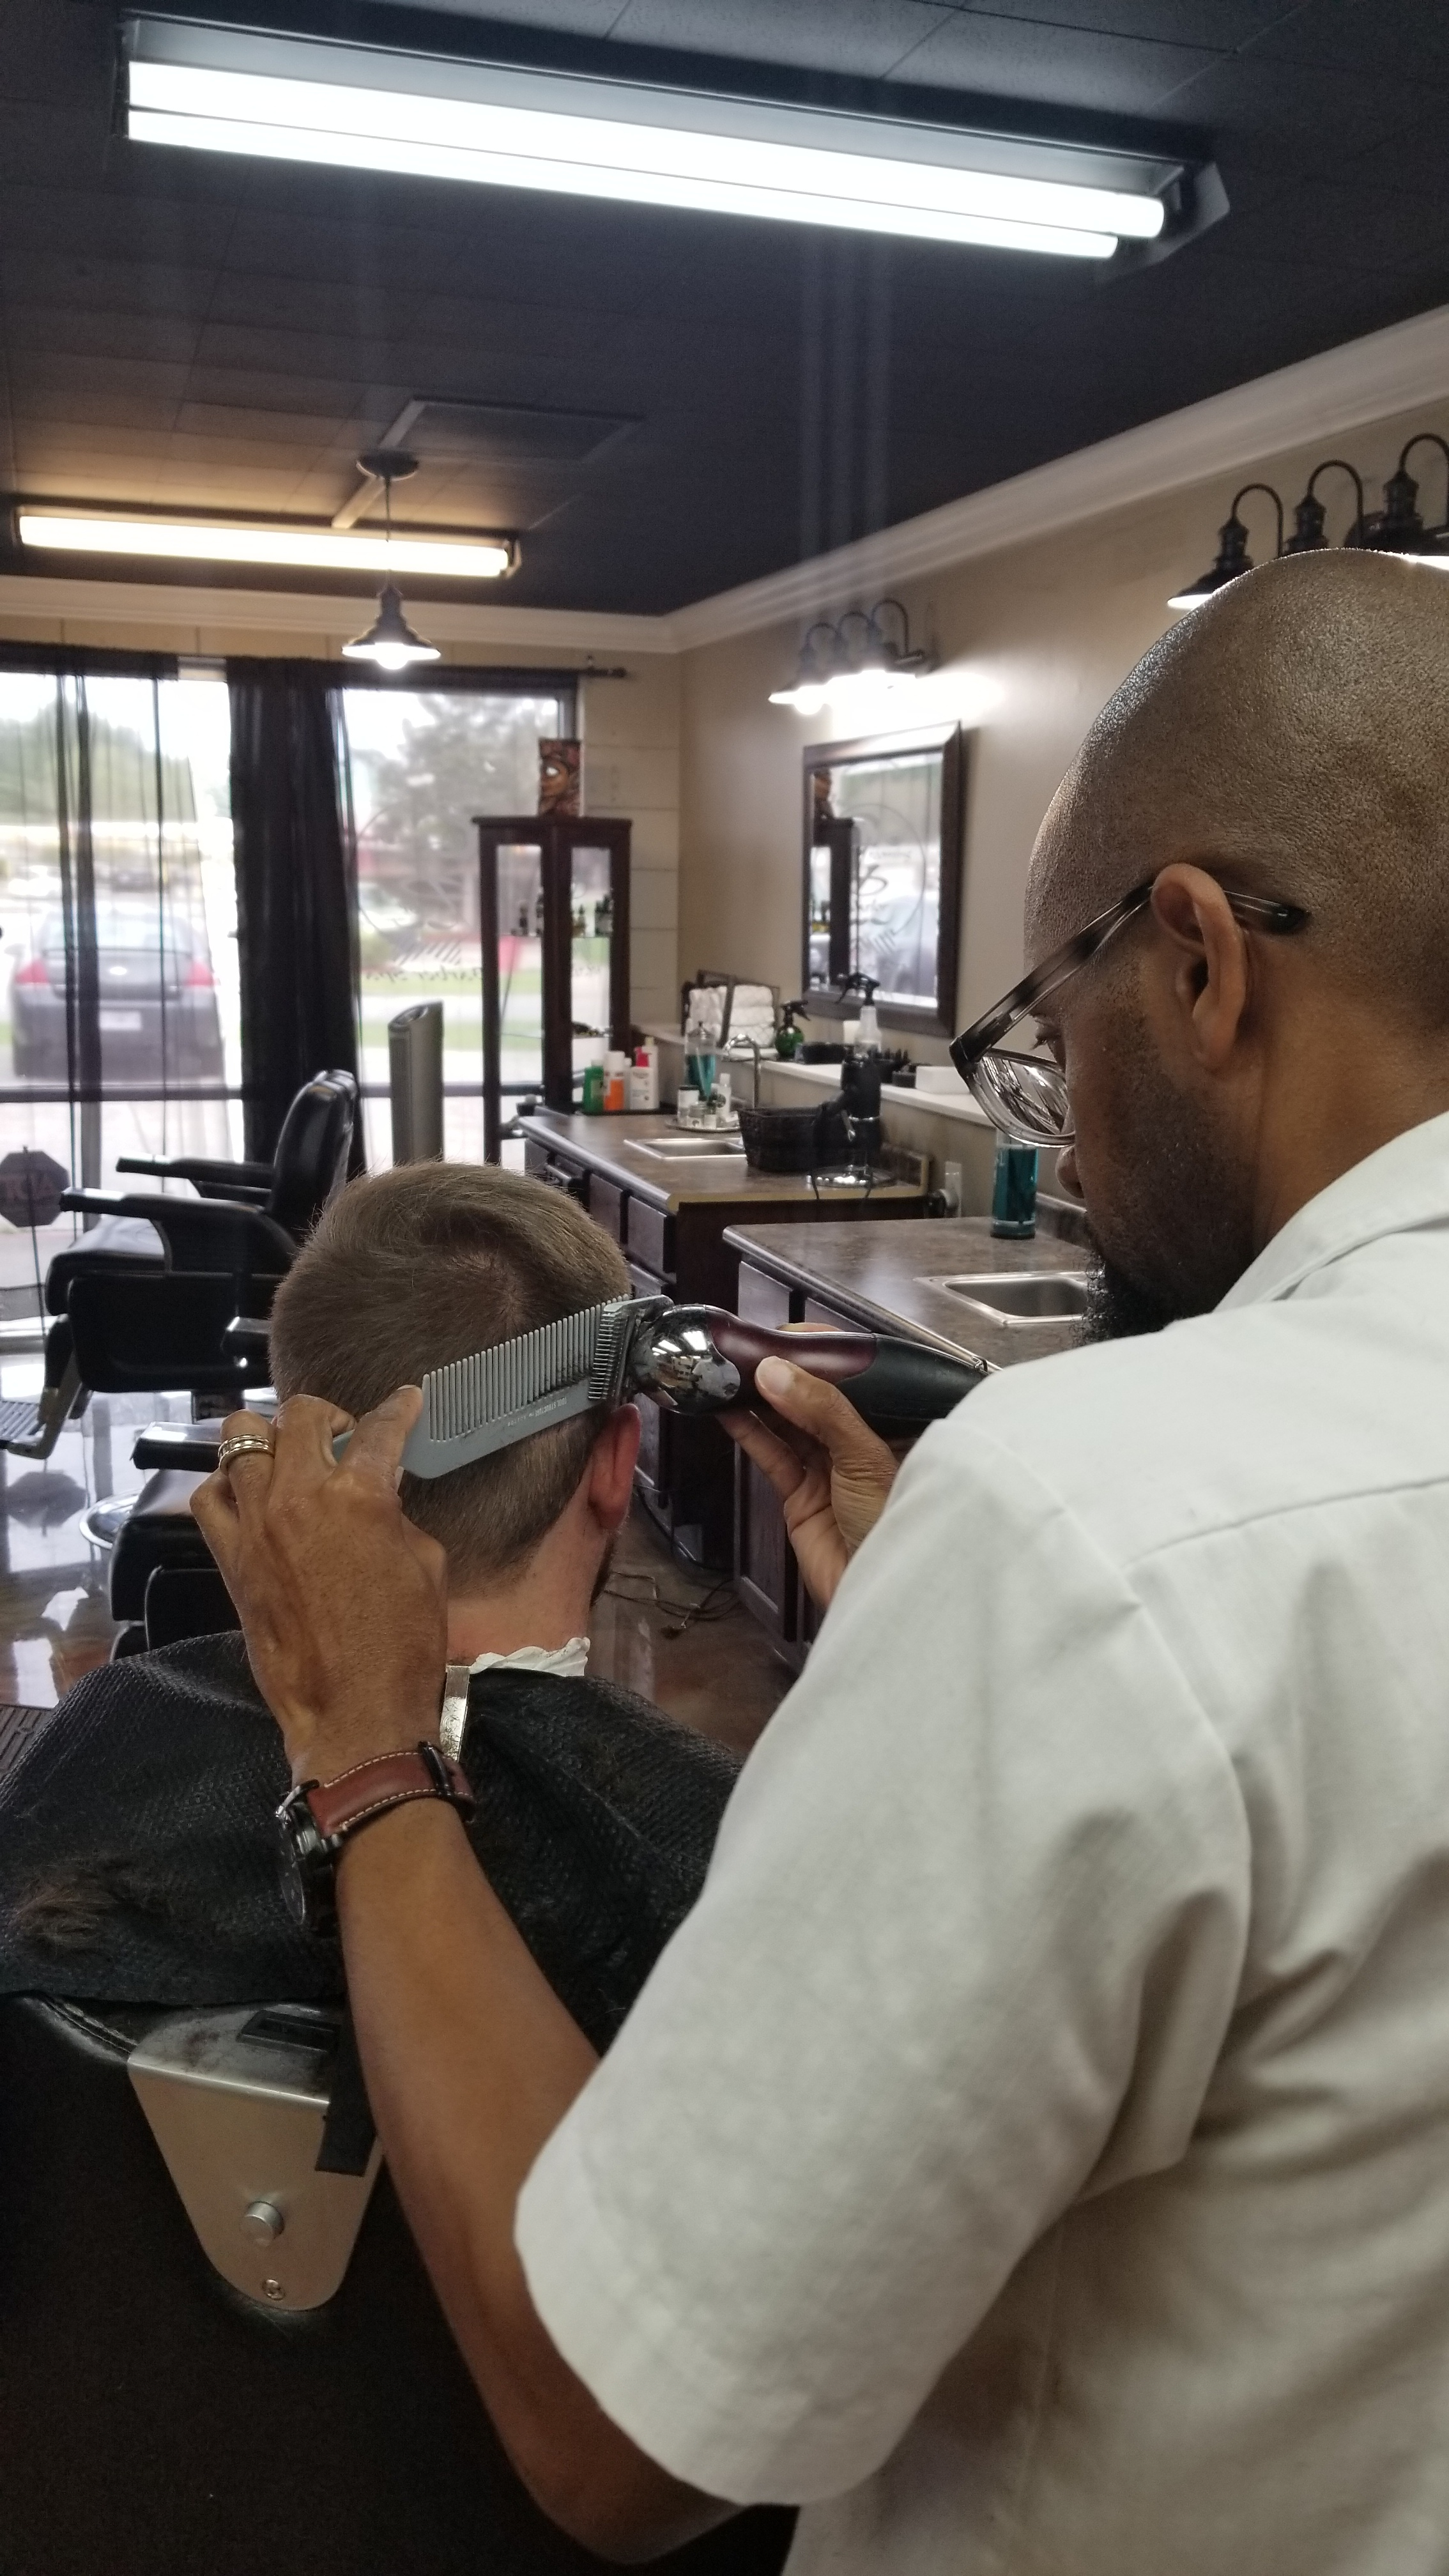 Barbershops and beauty salons which offer appointments normally have a higher standard of customer service. It is a good habit to schedule your haircut appointment ahead of time. This will give your barber stylist enough time to focus on your haircut and to provide additional services if needed. Also, if you are not able to make your appointment on time it is important to call or email to let the salon know. If you know you can't make the appointment at all out of respect inform your barber stylist as soon as possible.  Be mindful that most haircuts on social media are most likely not real, there are programs to change a picture to make it look perfect. Allow your barber stylist to make suggestions on a style that will work best for you. Don't have unreal expectations for your barber stylist to make you look like someone else. On the day of your appointment it helps when your hair is product free which will allow for a smooth haircut. Not wearing a hat or baseball cap will allow for a better cut as well. Shampoo your hair if you can before your haircut, this helps the barber stylist blendt and get a sharper edge. Your barber stylist most likely offers a shampoo for an additional service in their salon. Your barber stylist should be someone you can communicate with so you can look good and feel good once you leave the salon.  Master Grooming Attendant,  Nissan Ballard